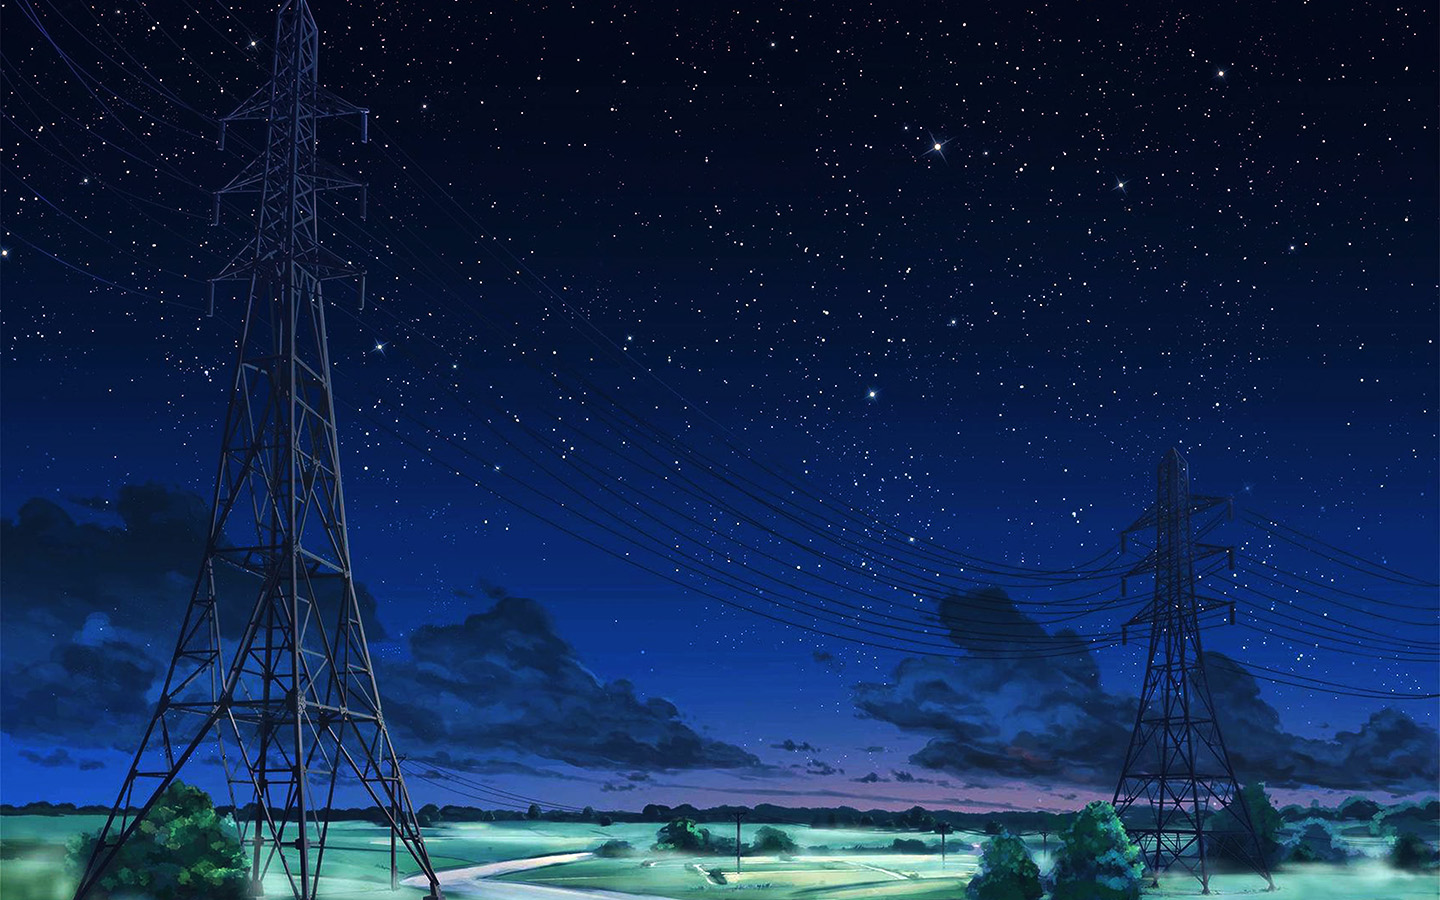 Hd Wallpapers For Nexus 5 Aw16 Arseniy Chebynkin Night Sky Star Blue Illustration